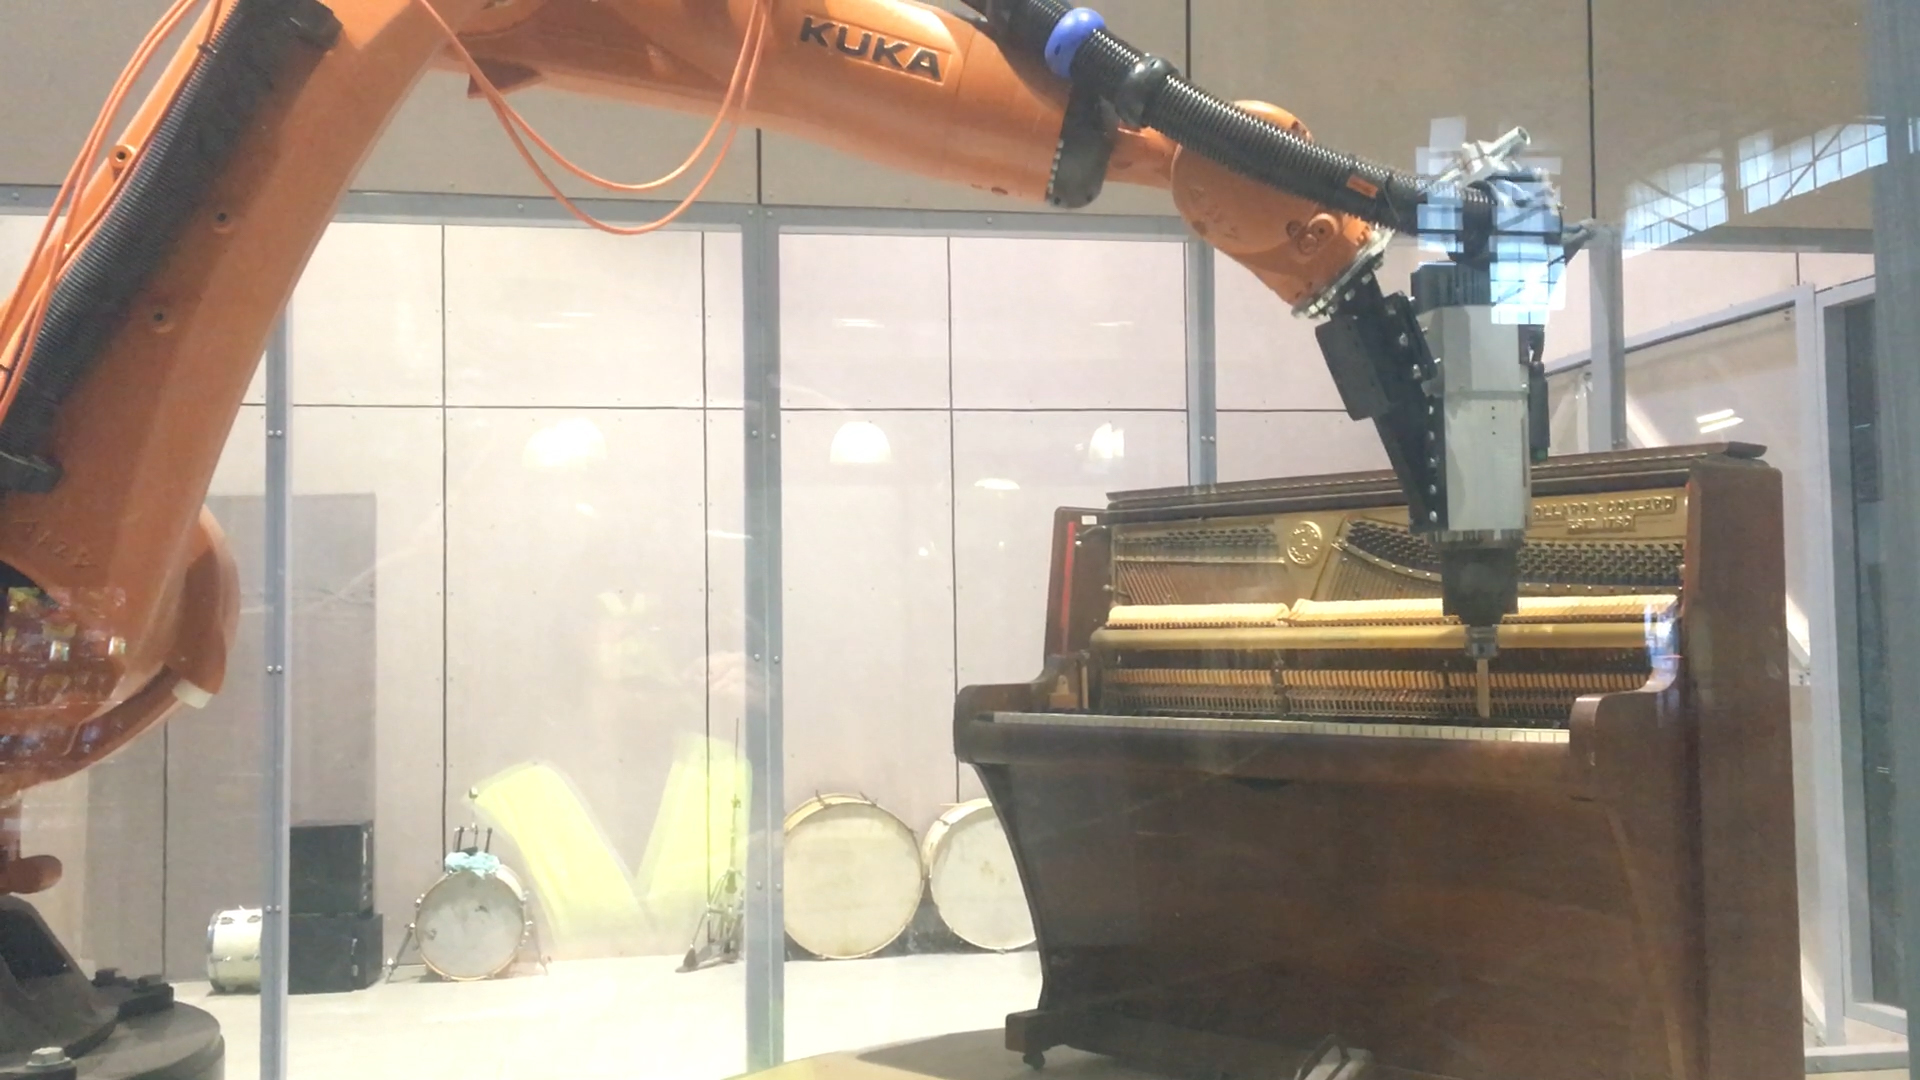 Marvin the performing robotic arm at Clocked Out   Design